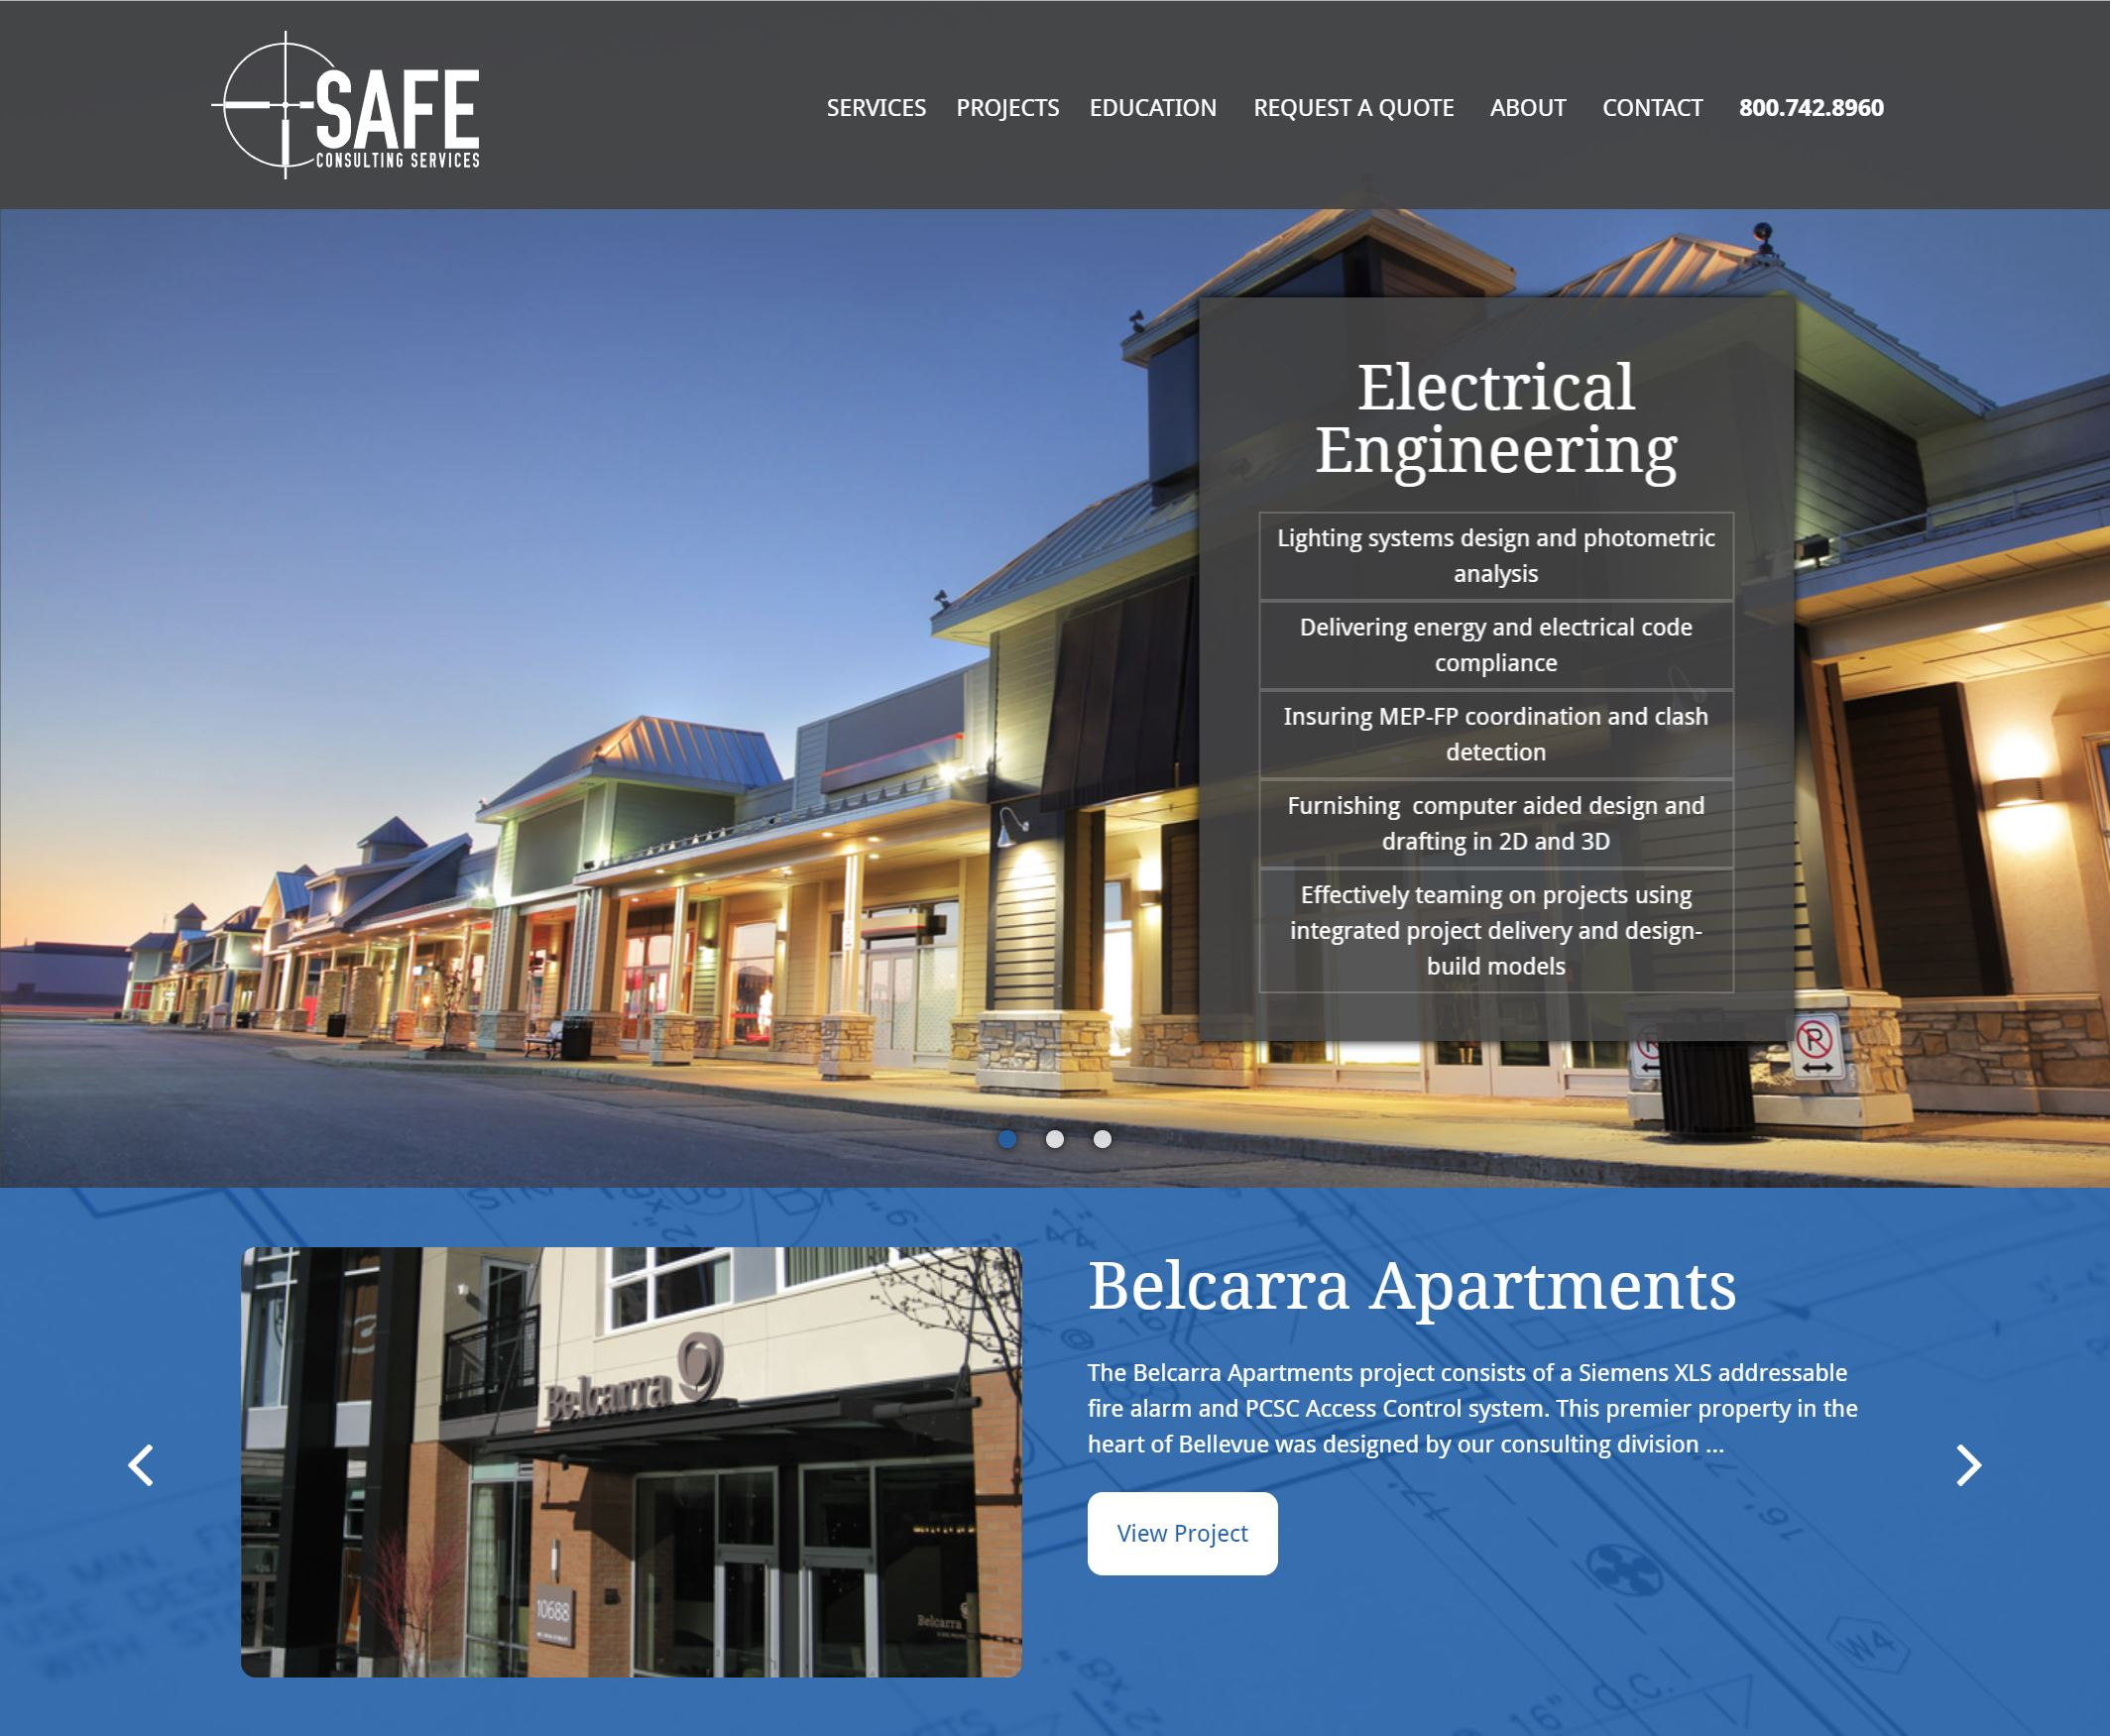 SafeConsulting